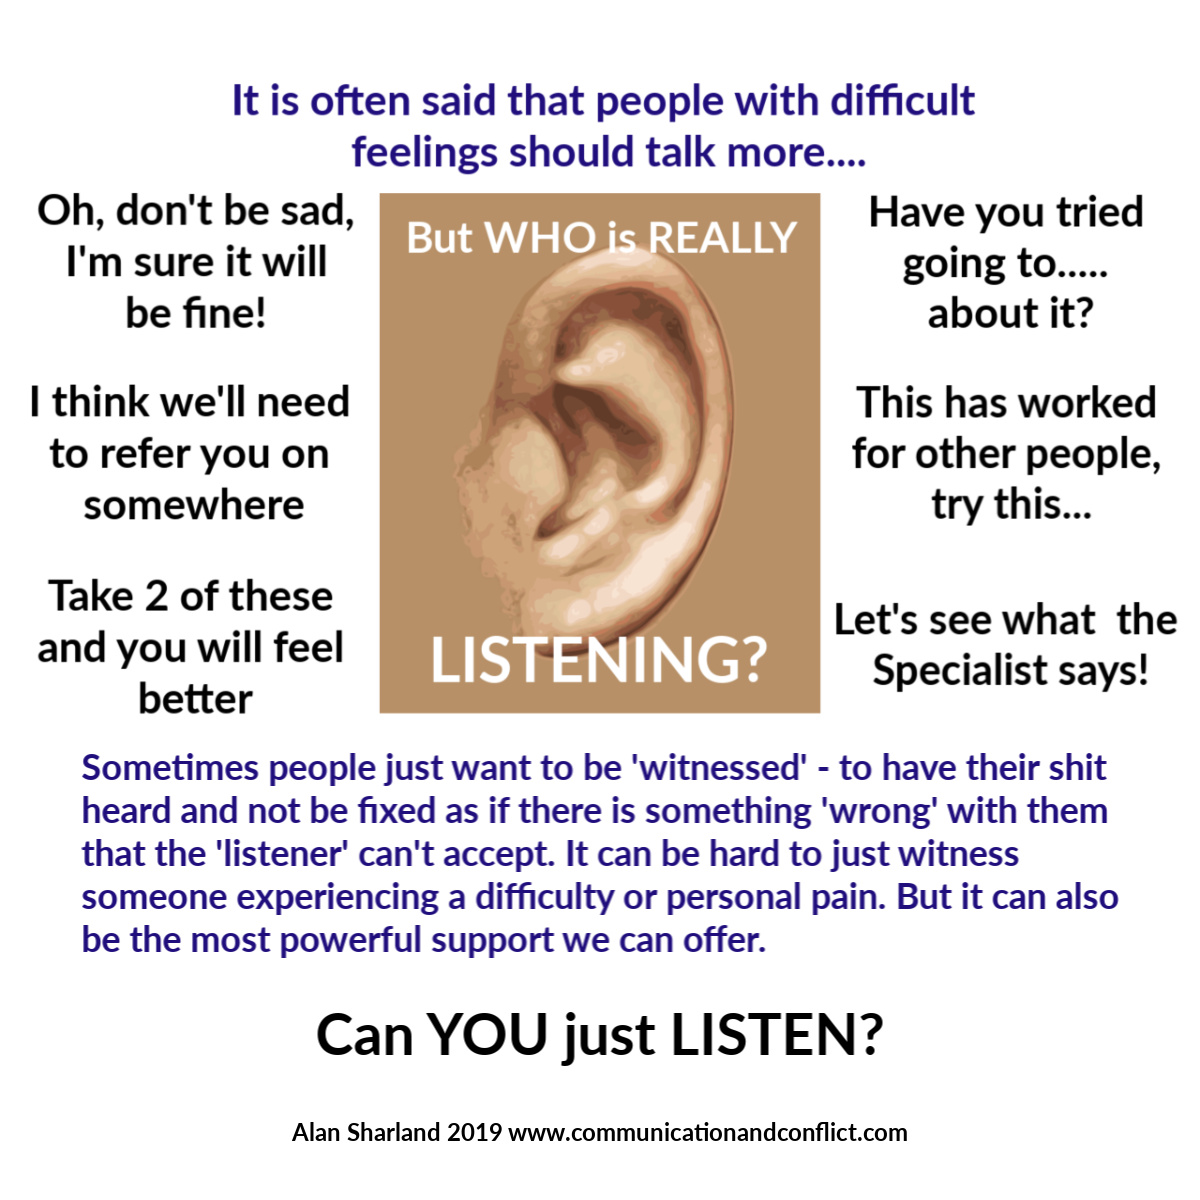 Listening exercise to explore listening skills - Talk But Who is Listening?